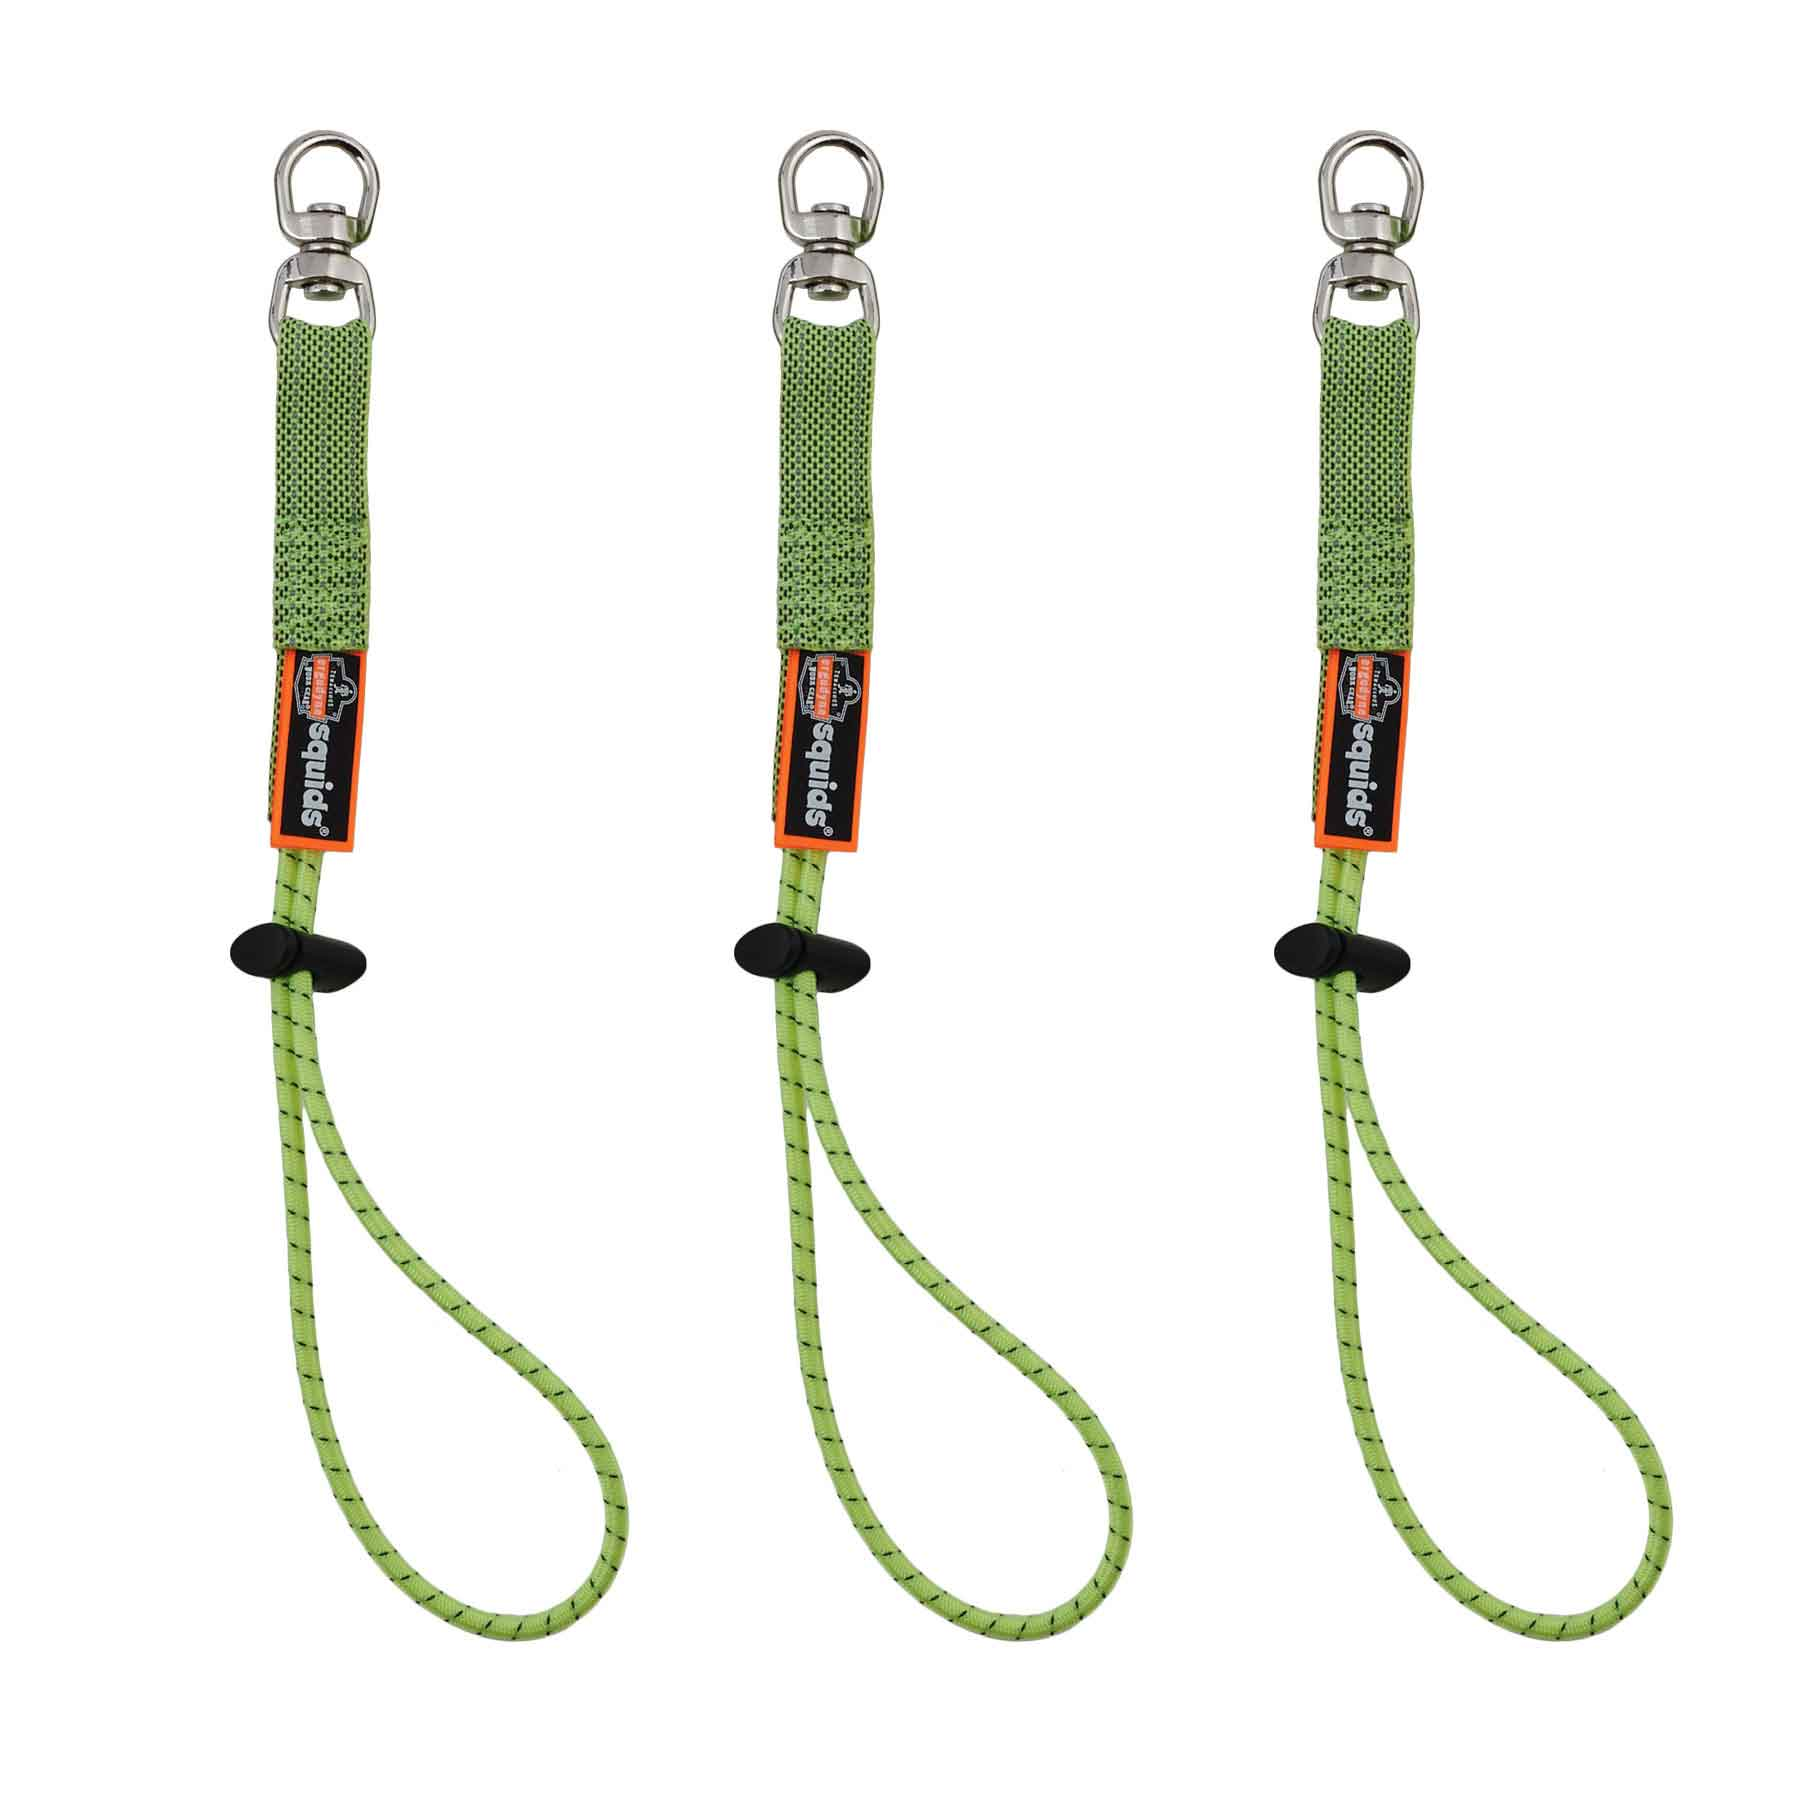 3713 Elastic Loop Tool Tails™ Swivel - 10lbs 3-pack